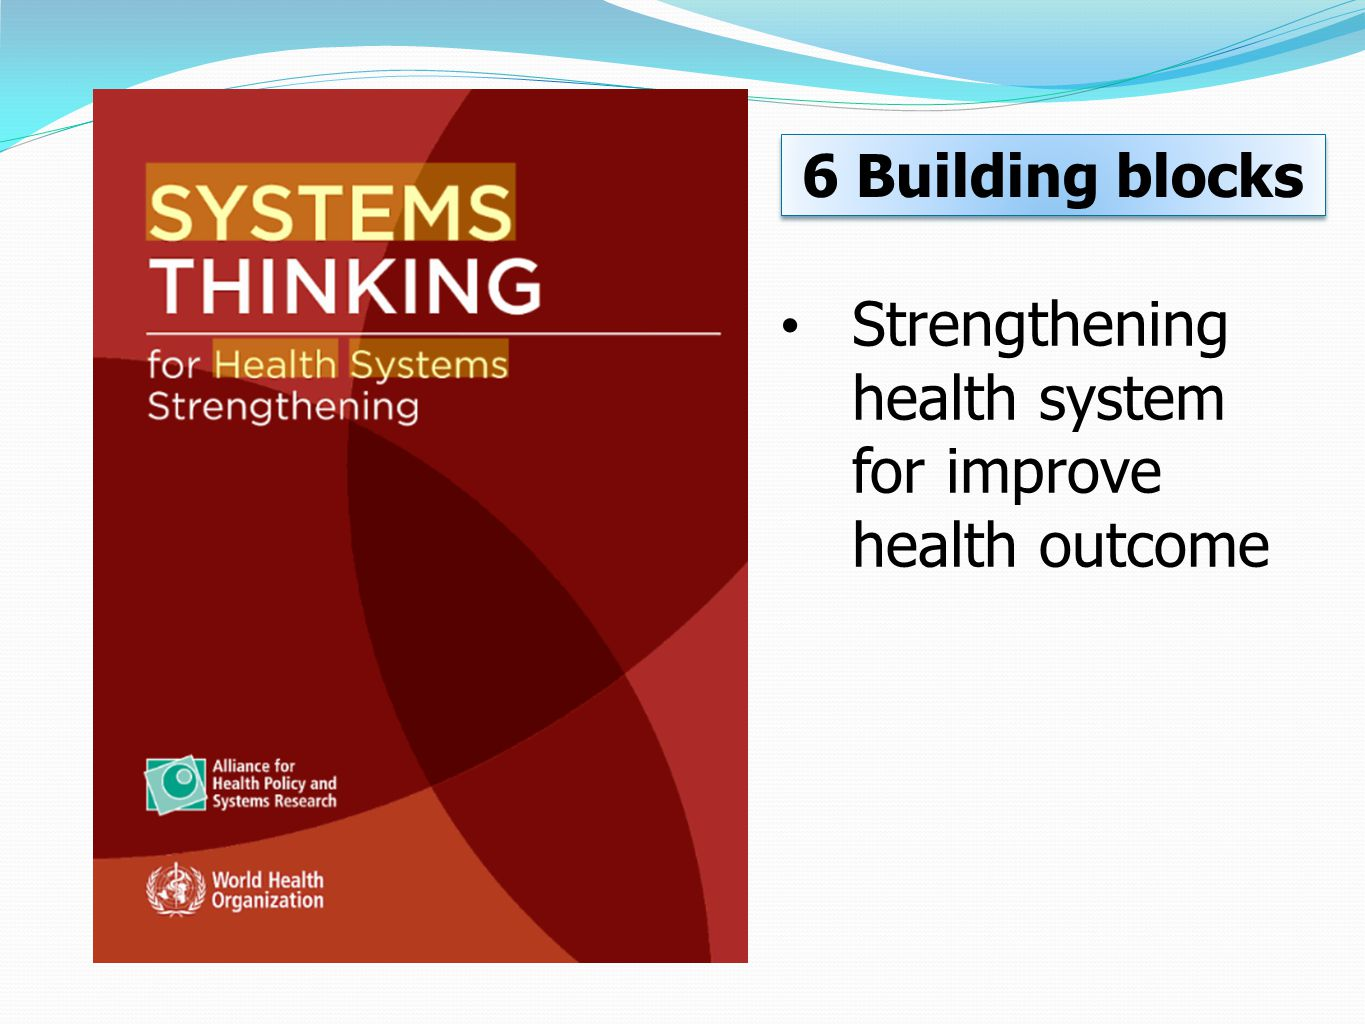 Strengthening health system for improve health outcome